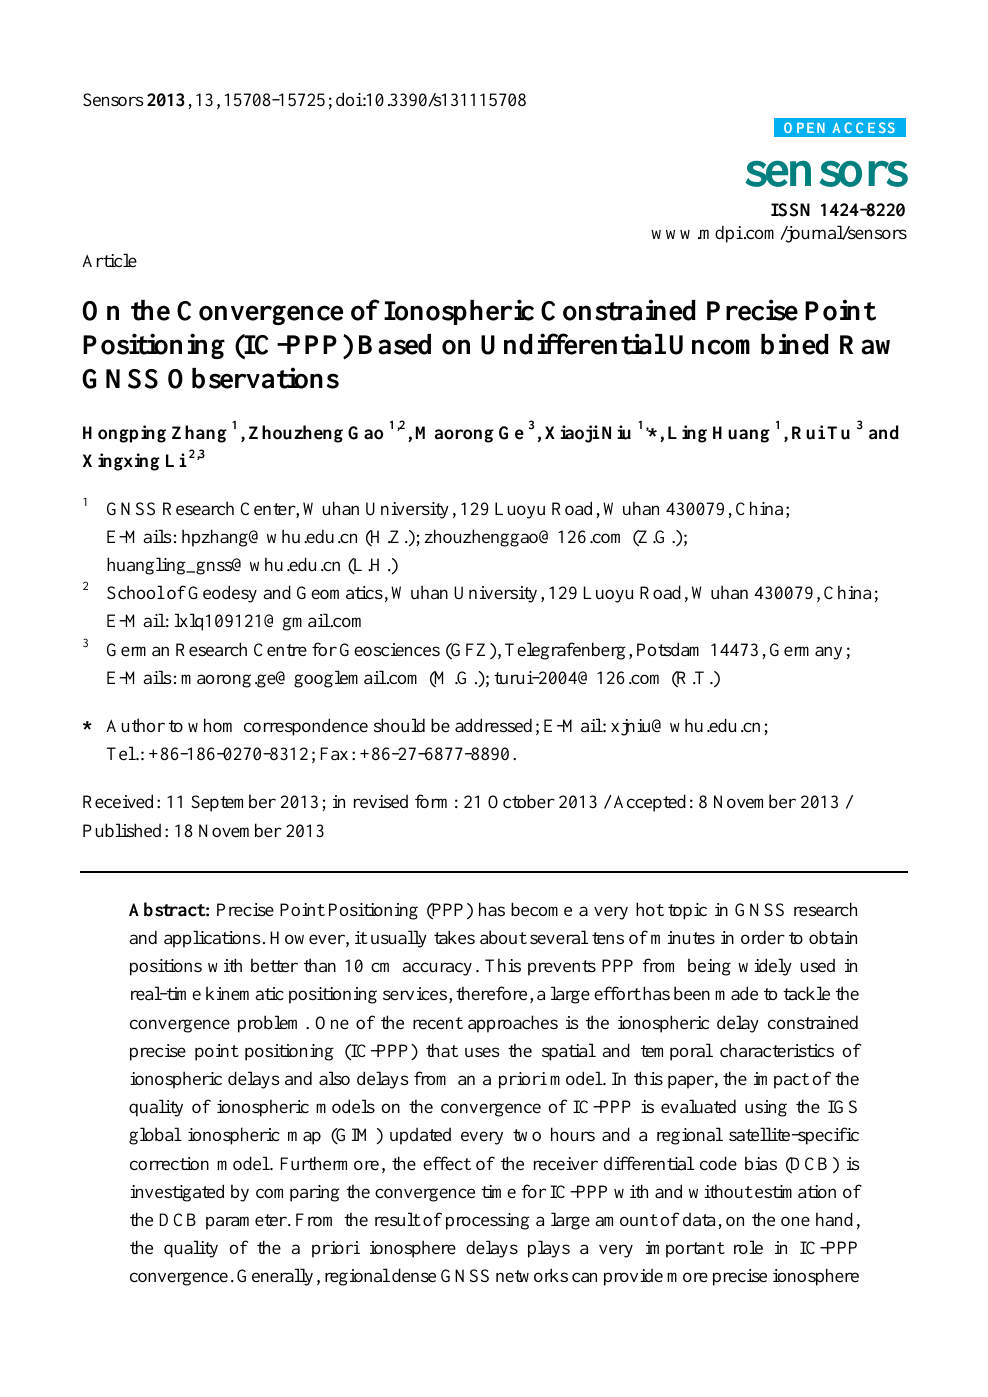 On the Convergence of Ionospheric Constrained Precise Point